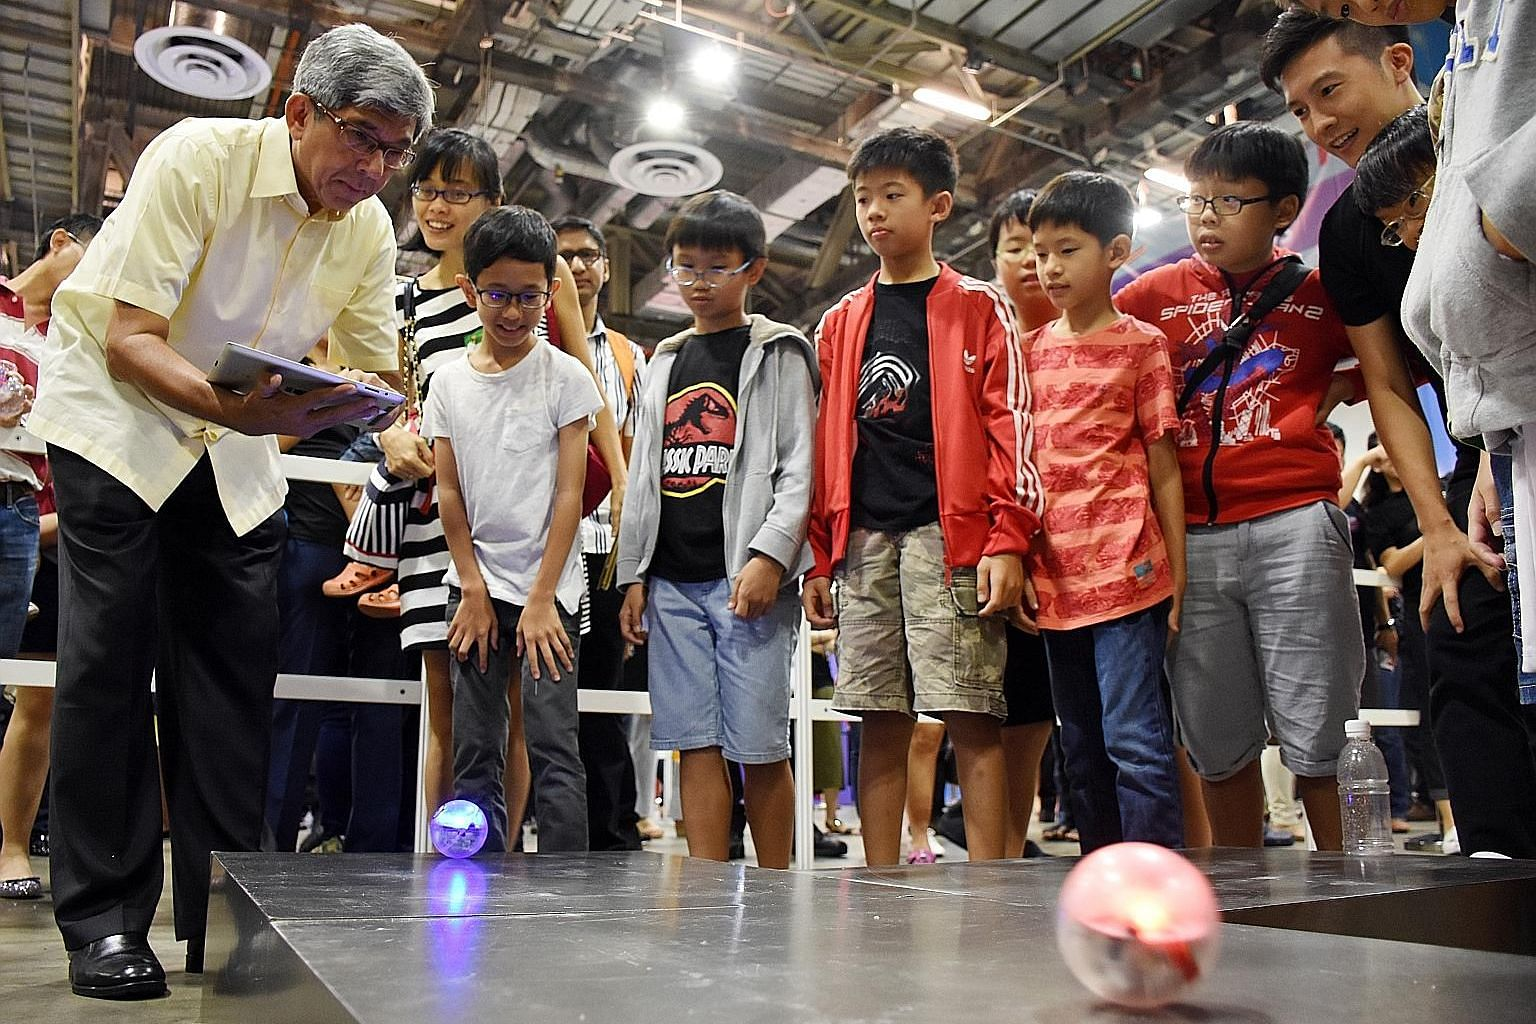 Dr Yaacob Ibrahim taking part in a game that involves navigating electronic balls with a tablet at Tech Saturday (Upsized!) yesterday. The two-day carnival focuses on products and services helping Singapore's digital economy transformation.